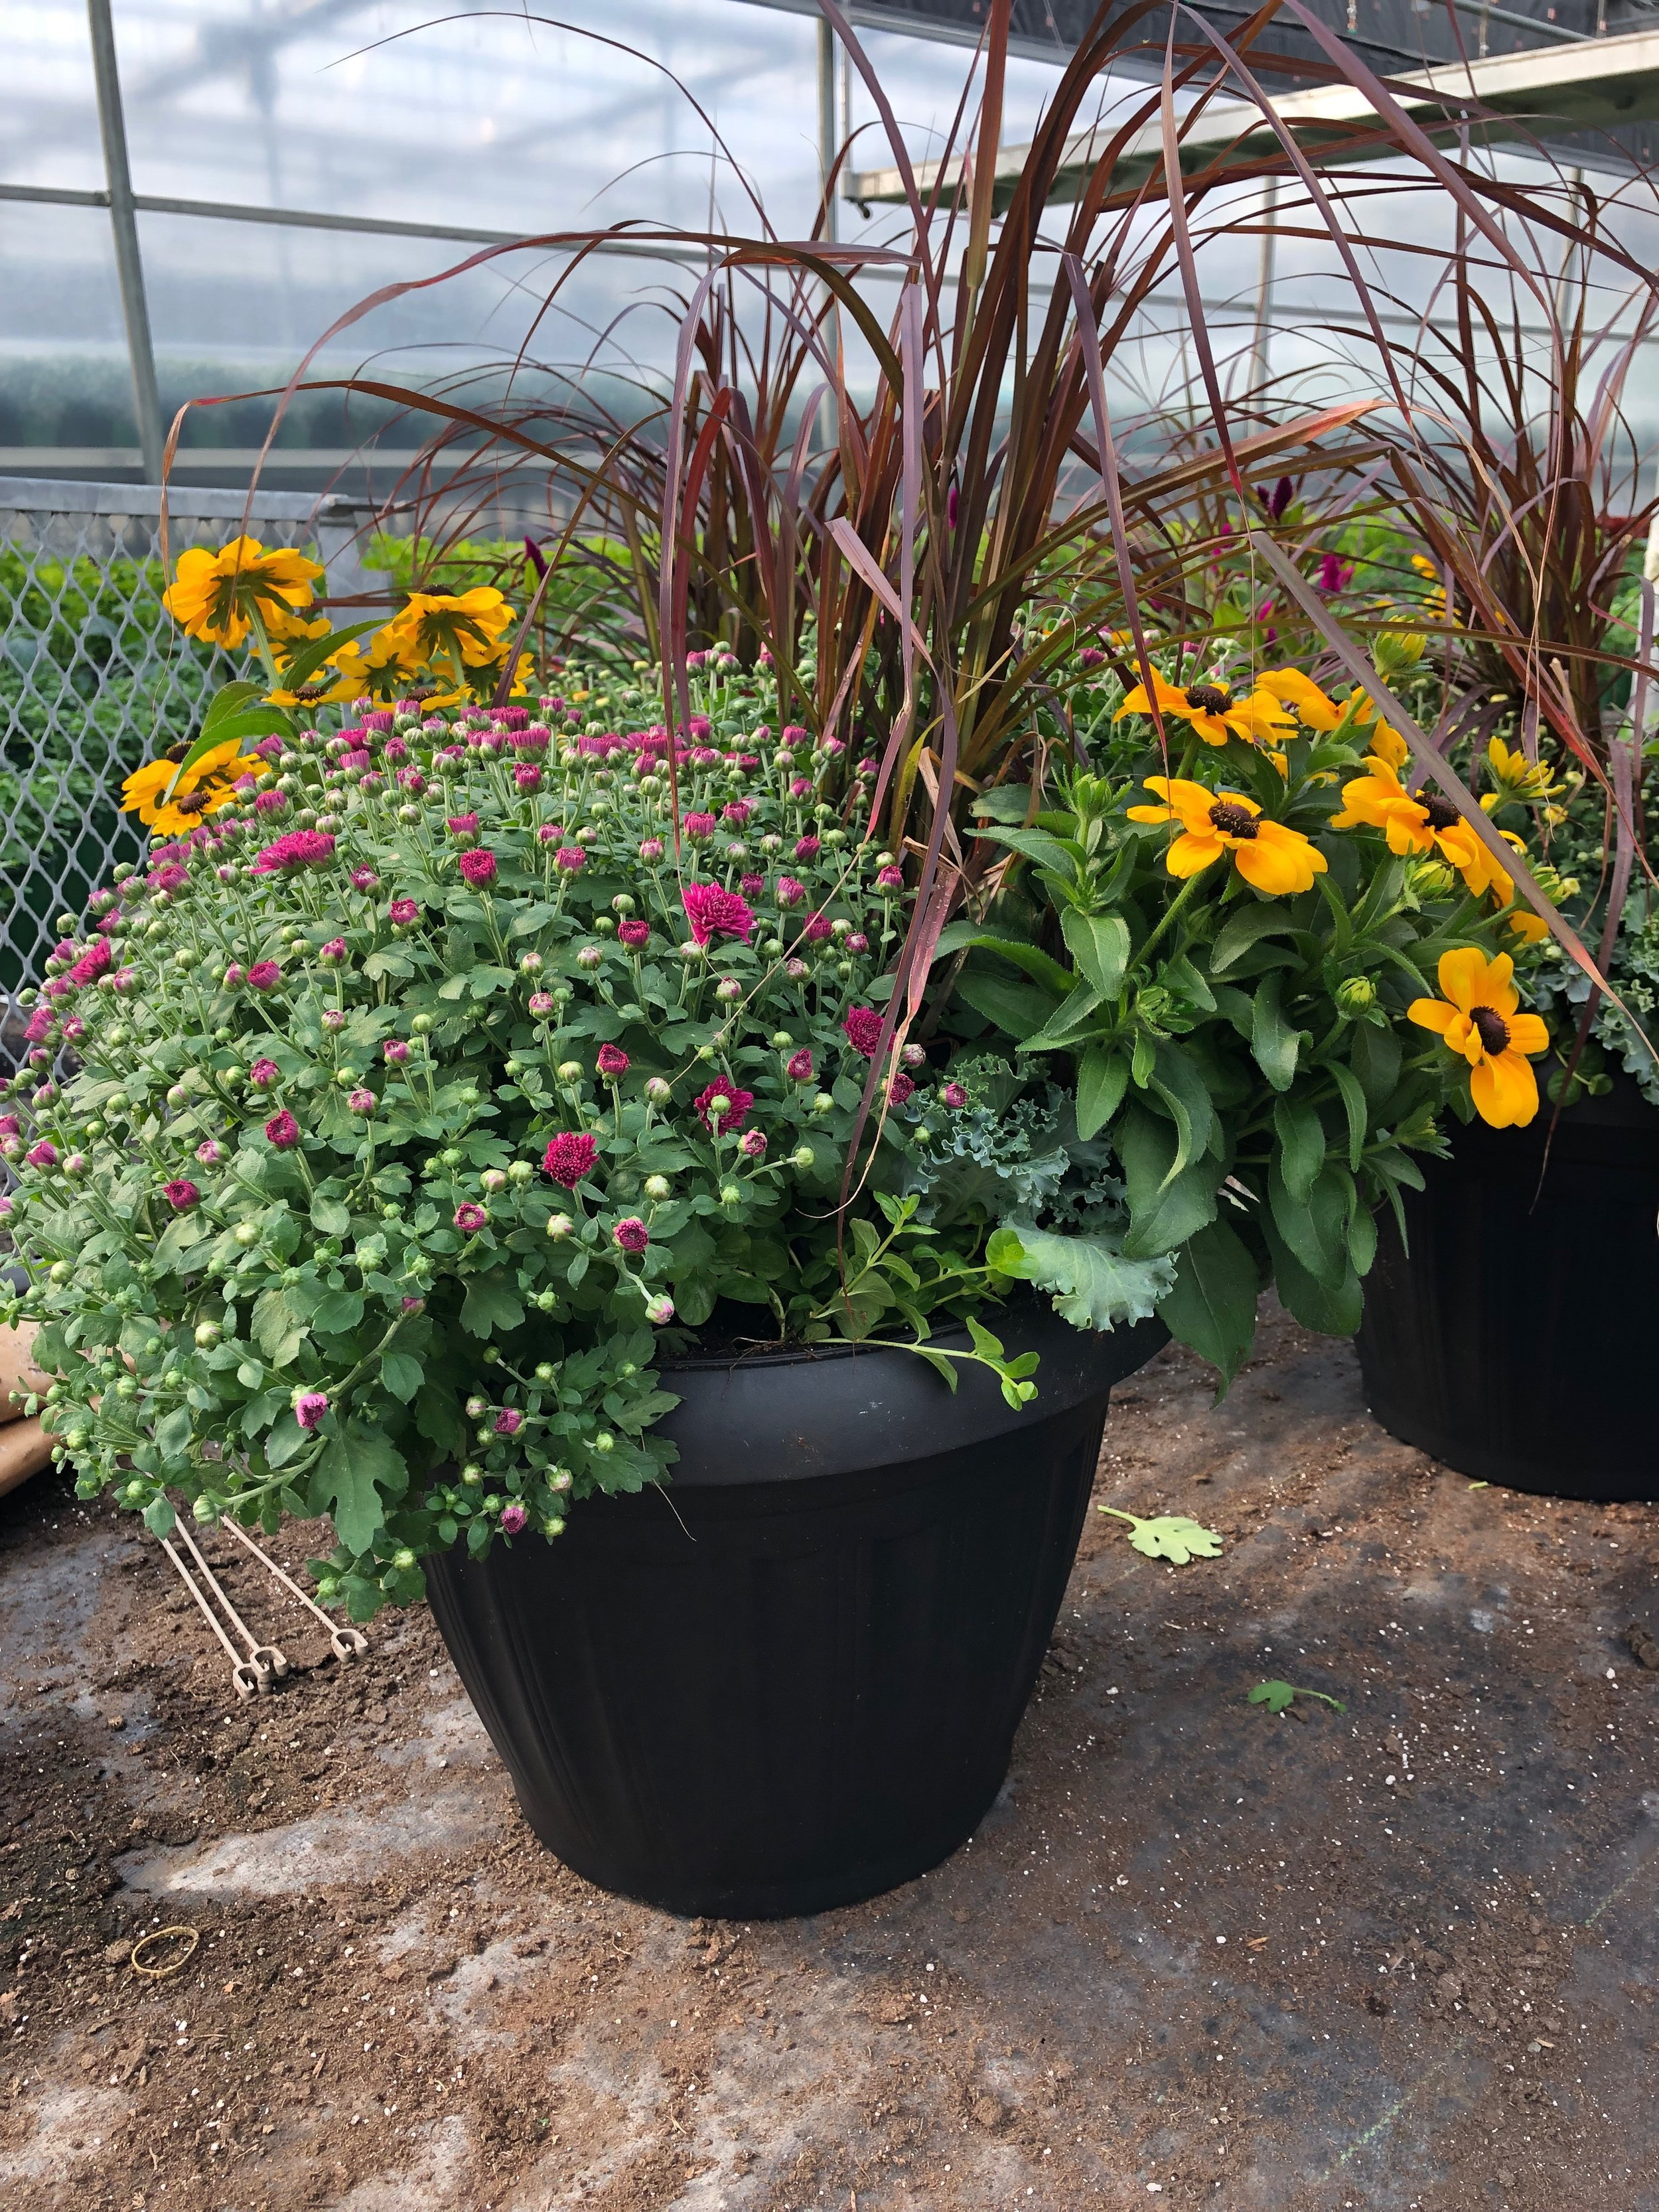 "DR Missions Fall Planter Fundraiser - Help support our Youth DR Missions Team by purchasing a stunning Fall Planter. These beautiful mixed planters are 16"" and perfect for a gift or your home.Cost: $40 per planterPickup: Sat Sept 7 - 8-10amTo reserve: click HERE or order yours at the Welcome Centre on Sunday"